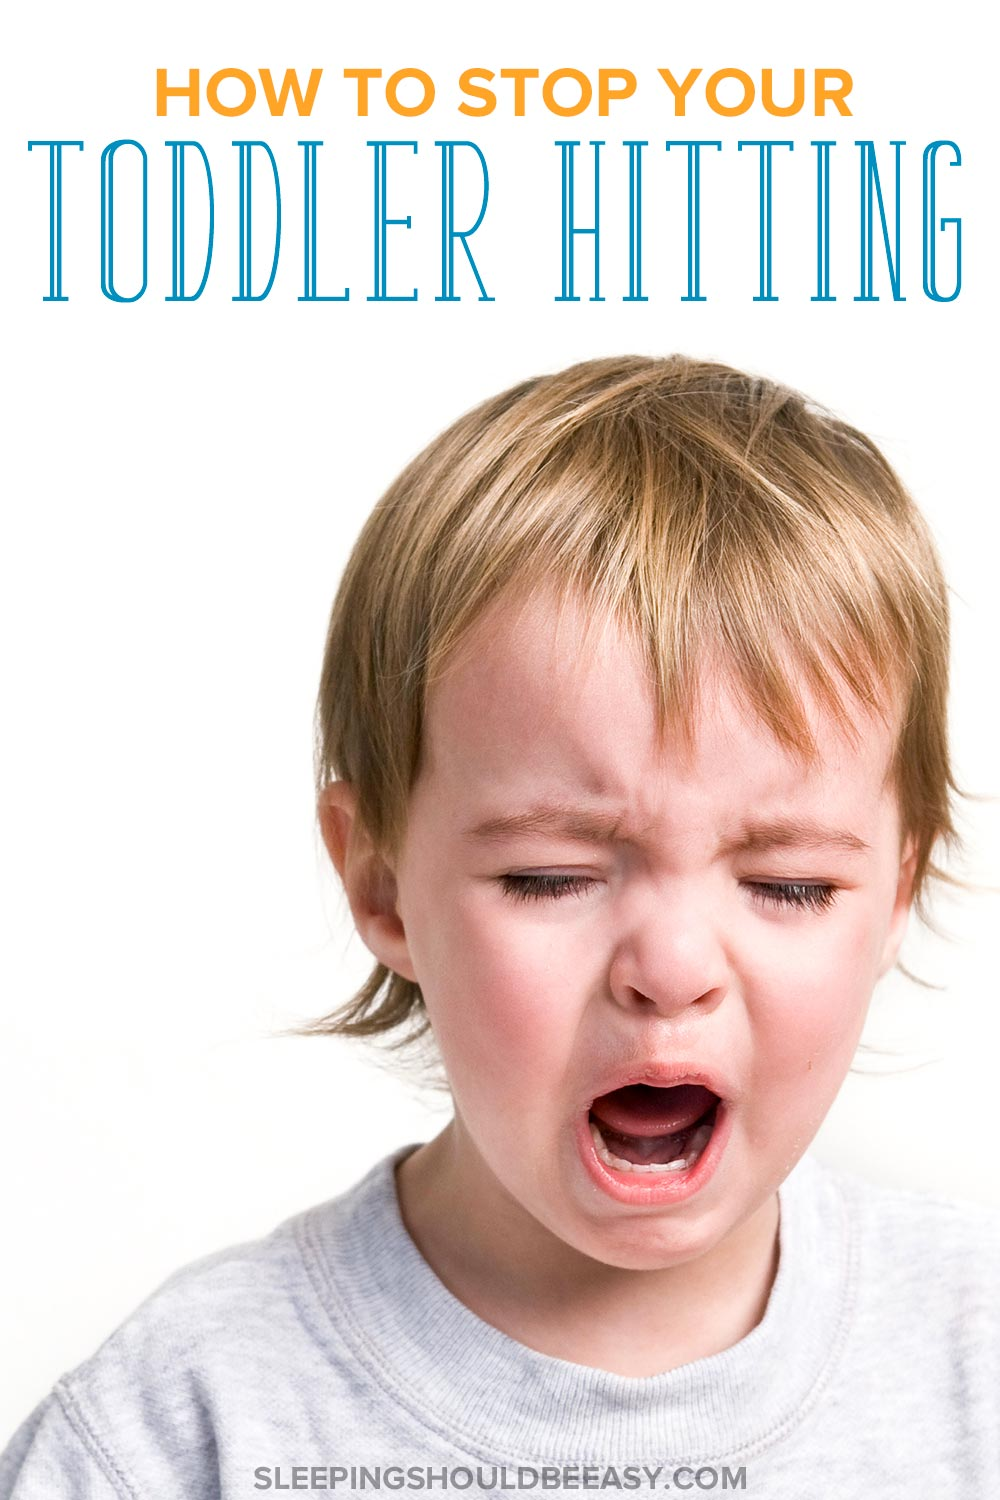 Little boy crying: How to stop toddler hitting